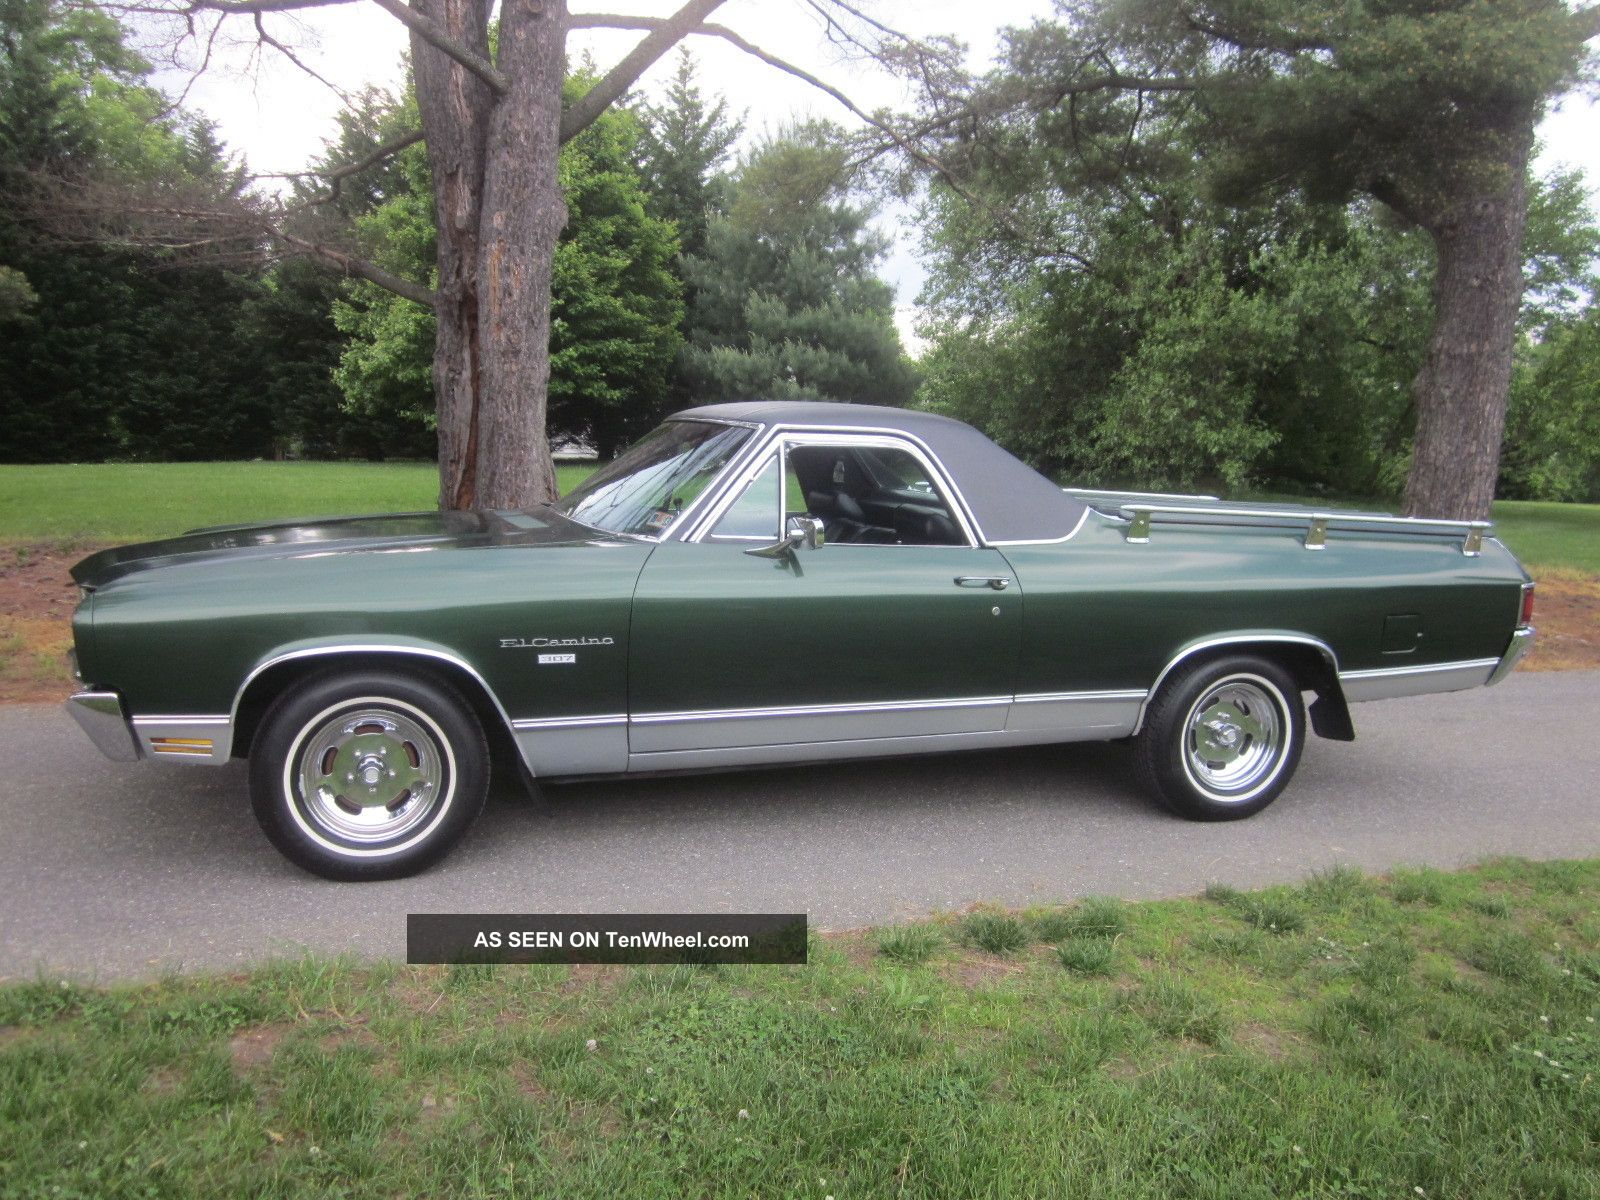 hight resolution of 1970 chevrolet el camino car 307 auto last owner 40yrs lincoln ranger 305d wiring diagram lincoln